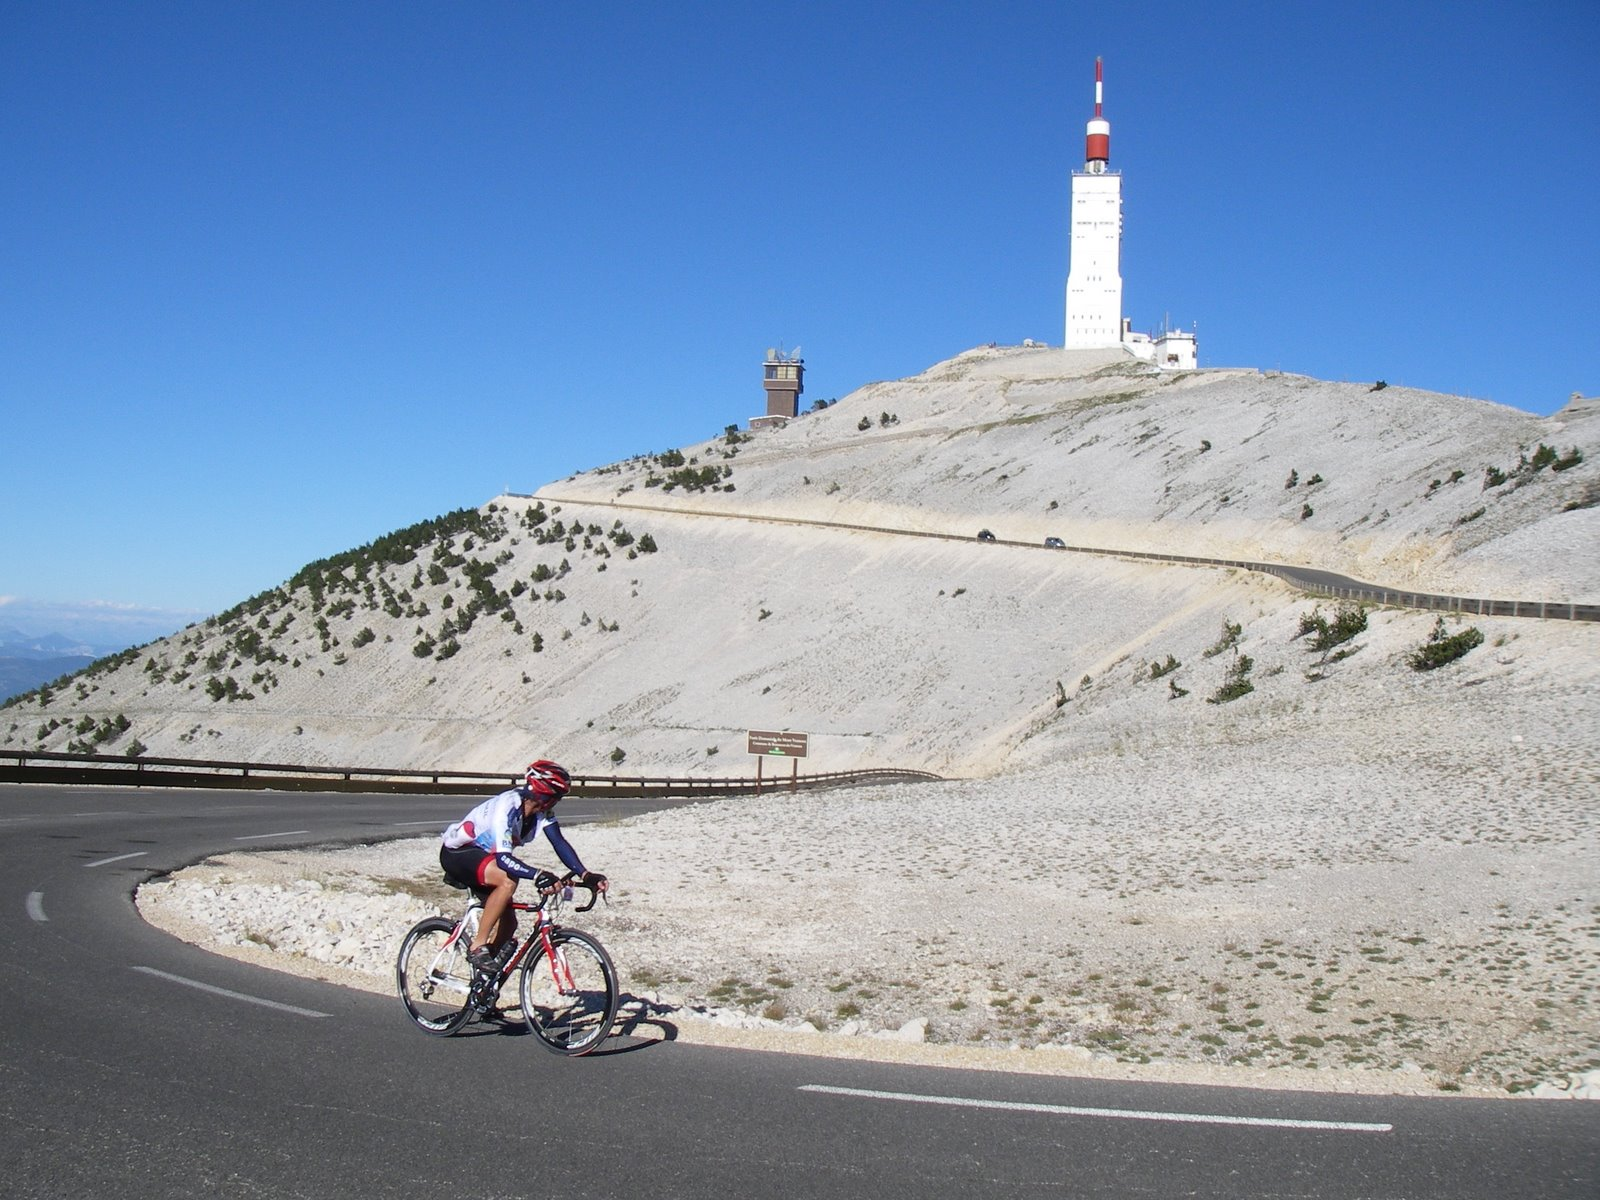 Cyclist making their way to the summit